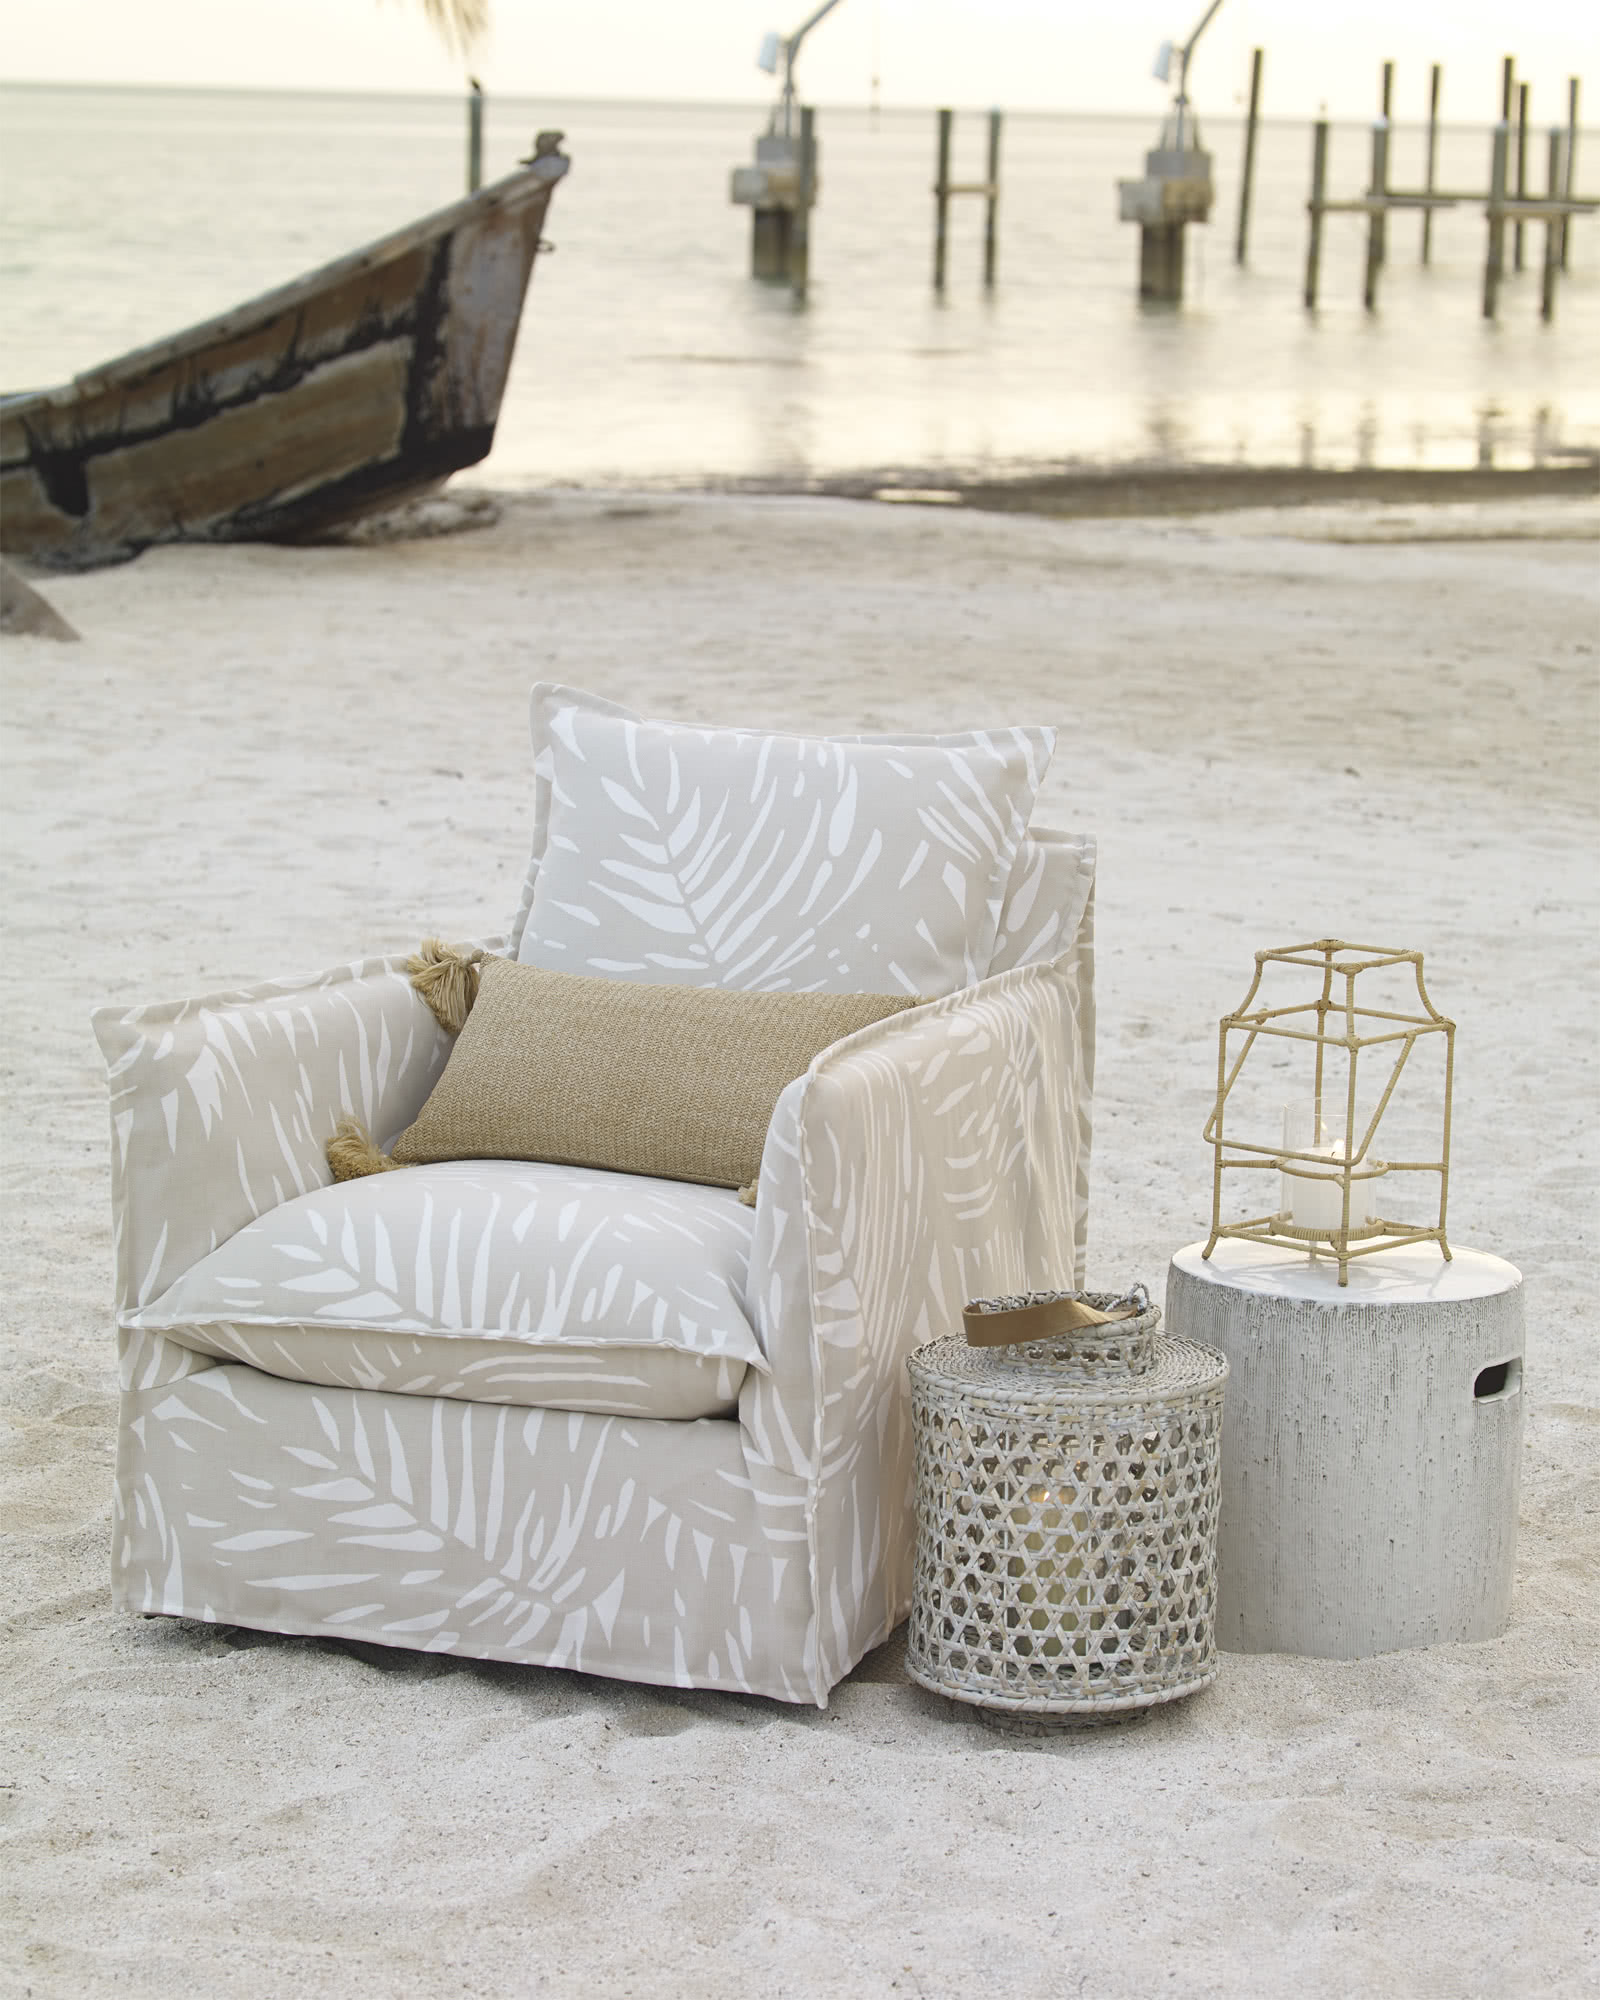 Sundial Outdoor Chair - Palm